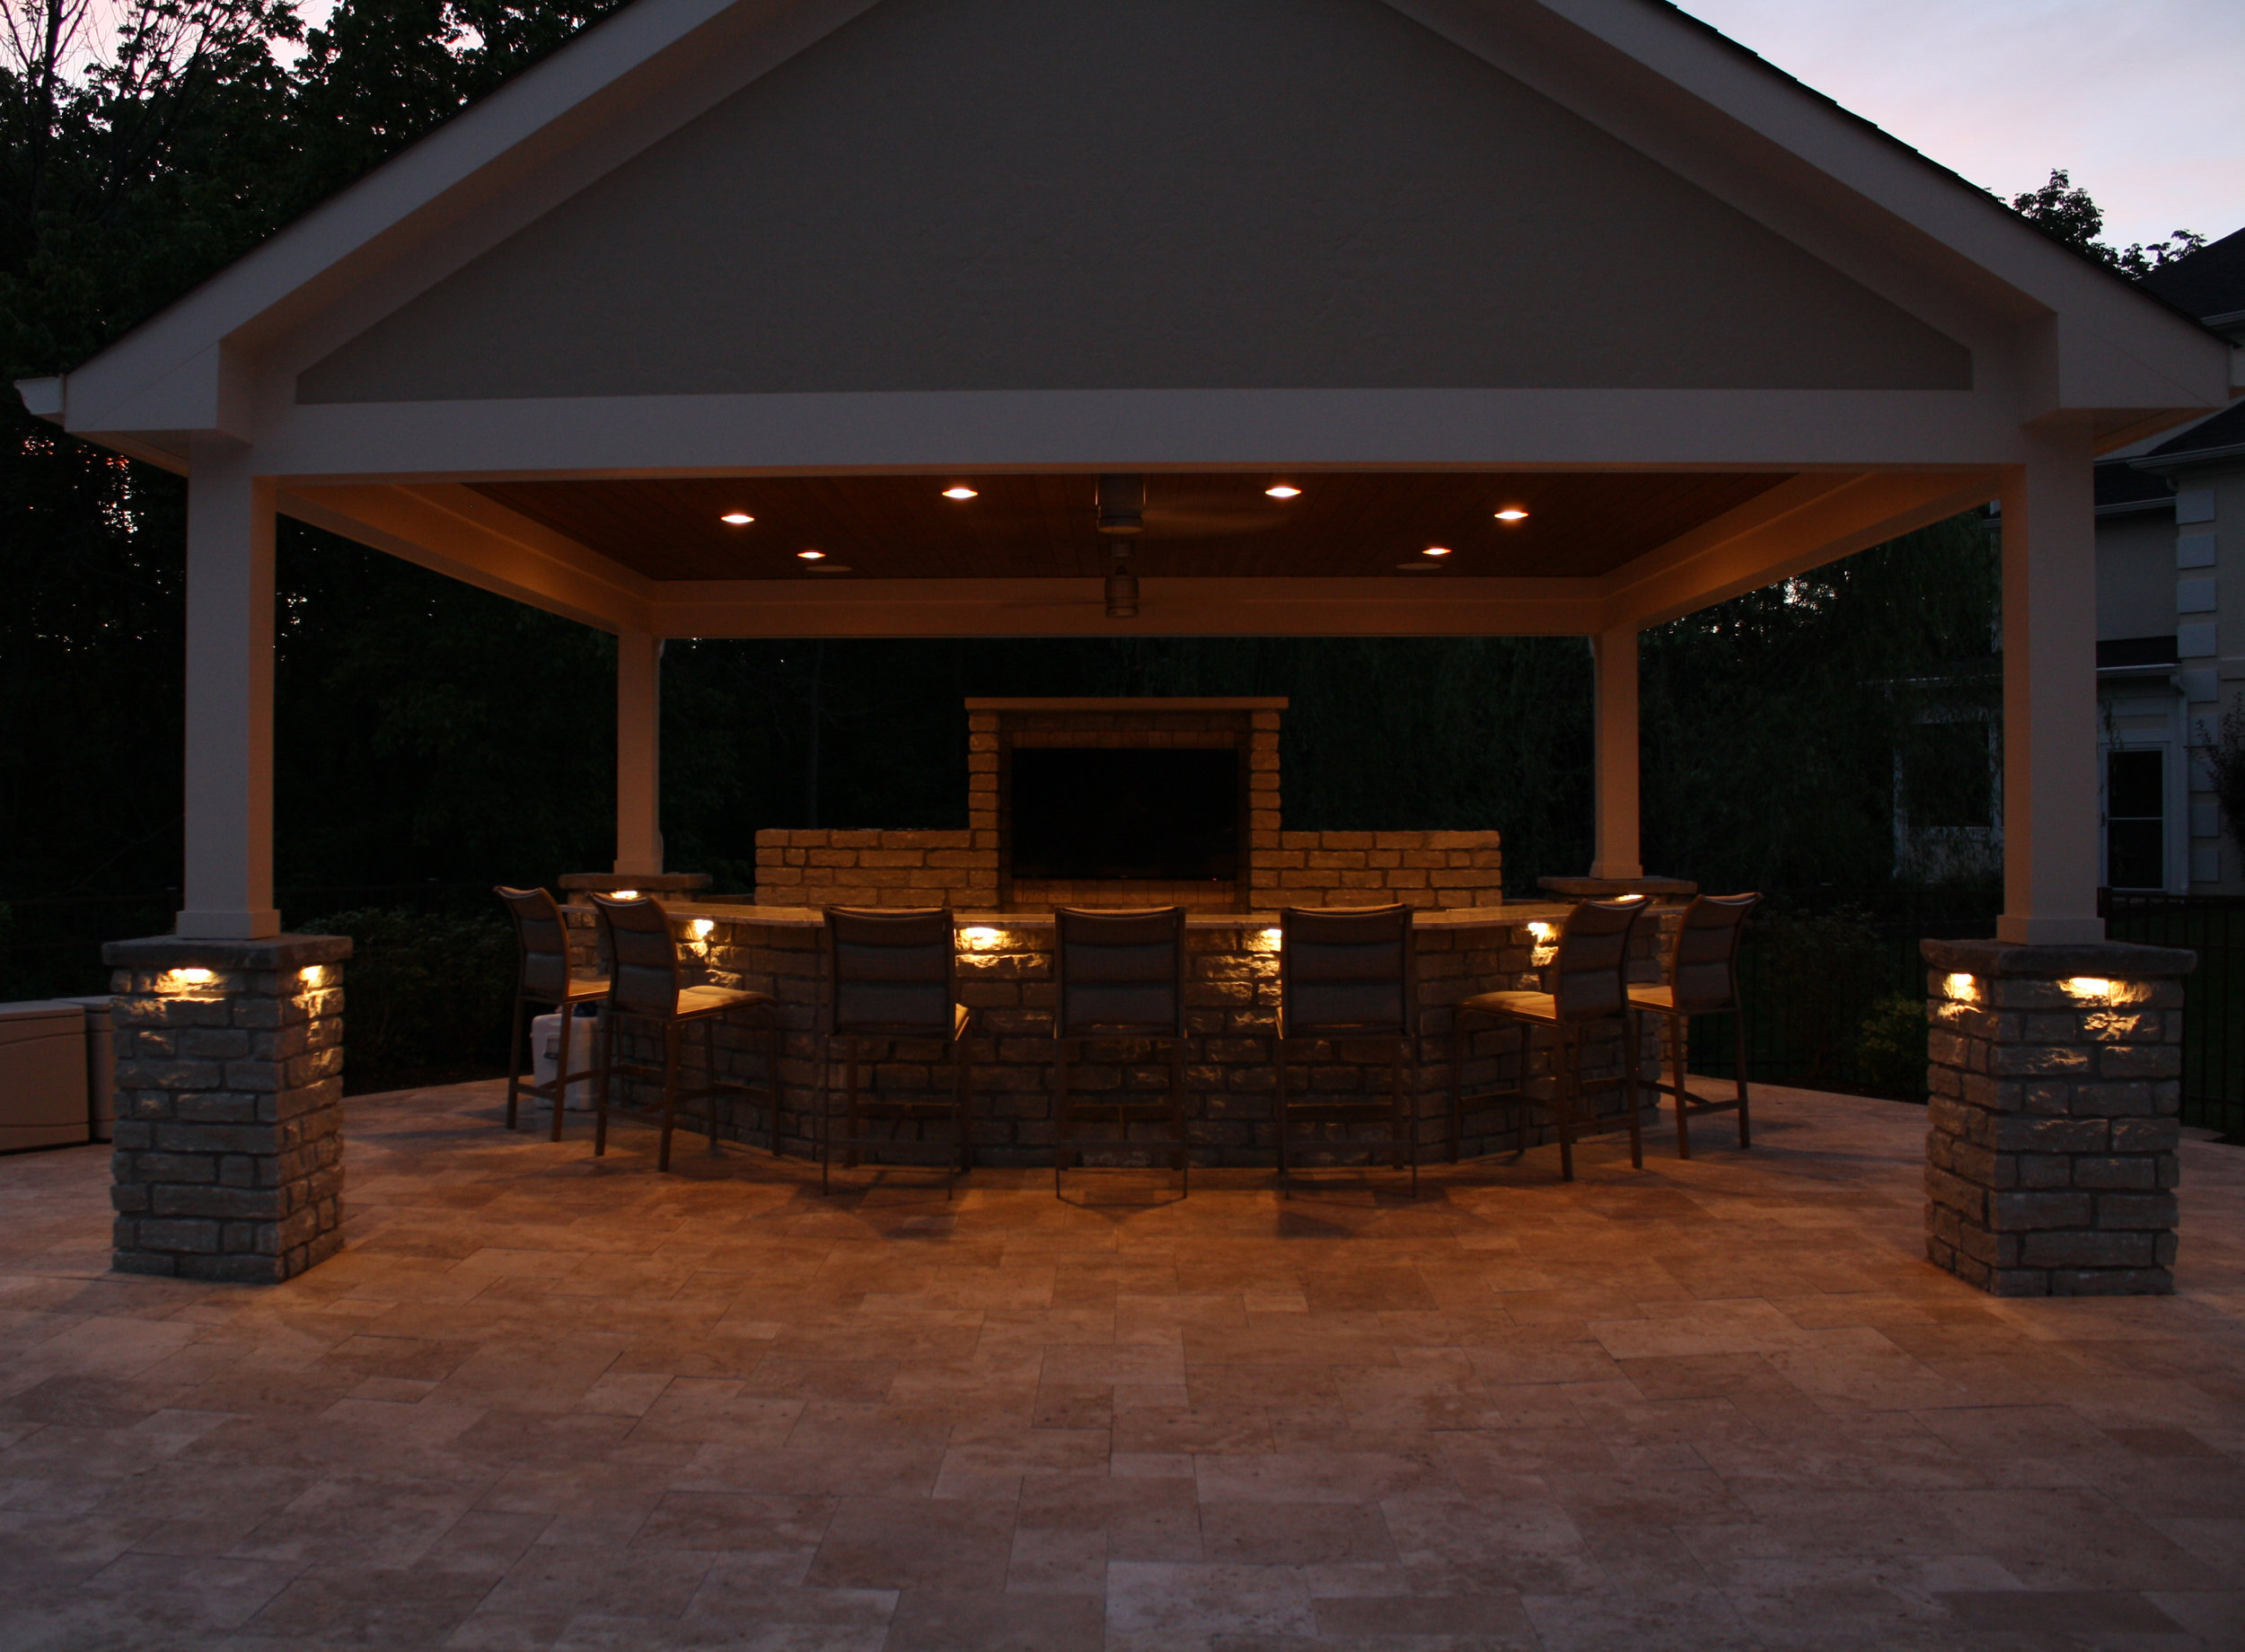 Accent lighting for stone columns outdoors.